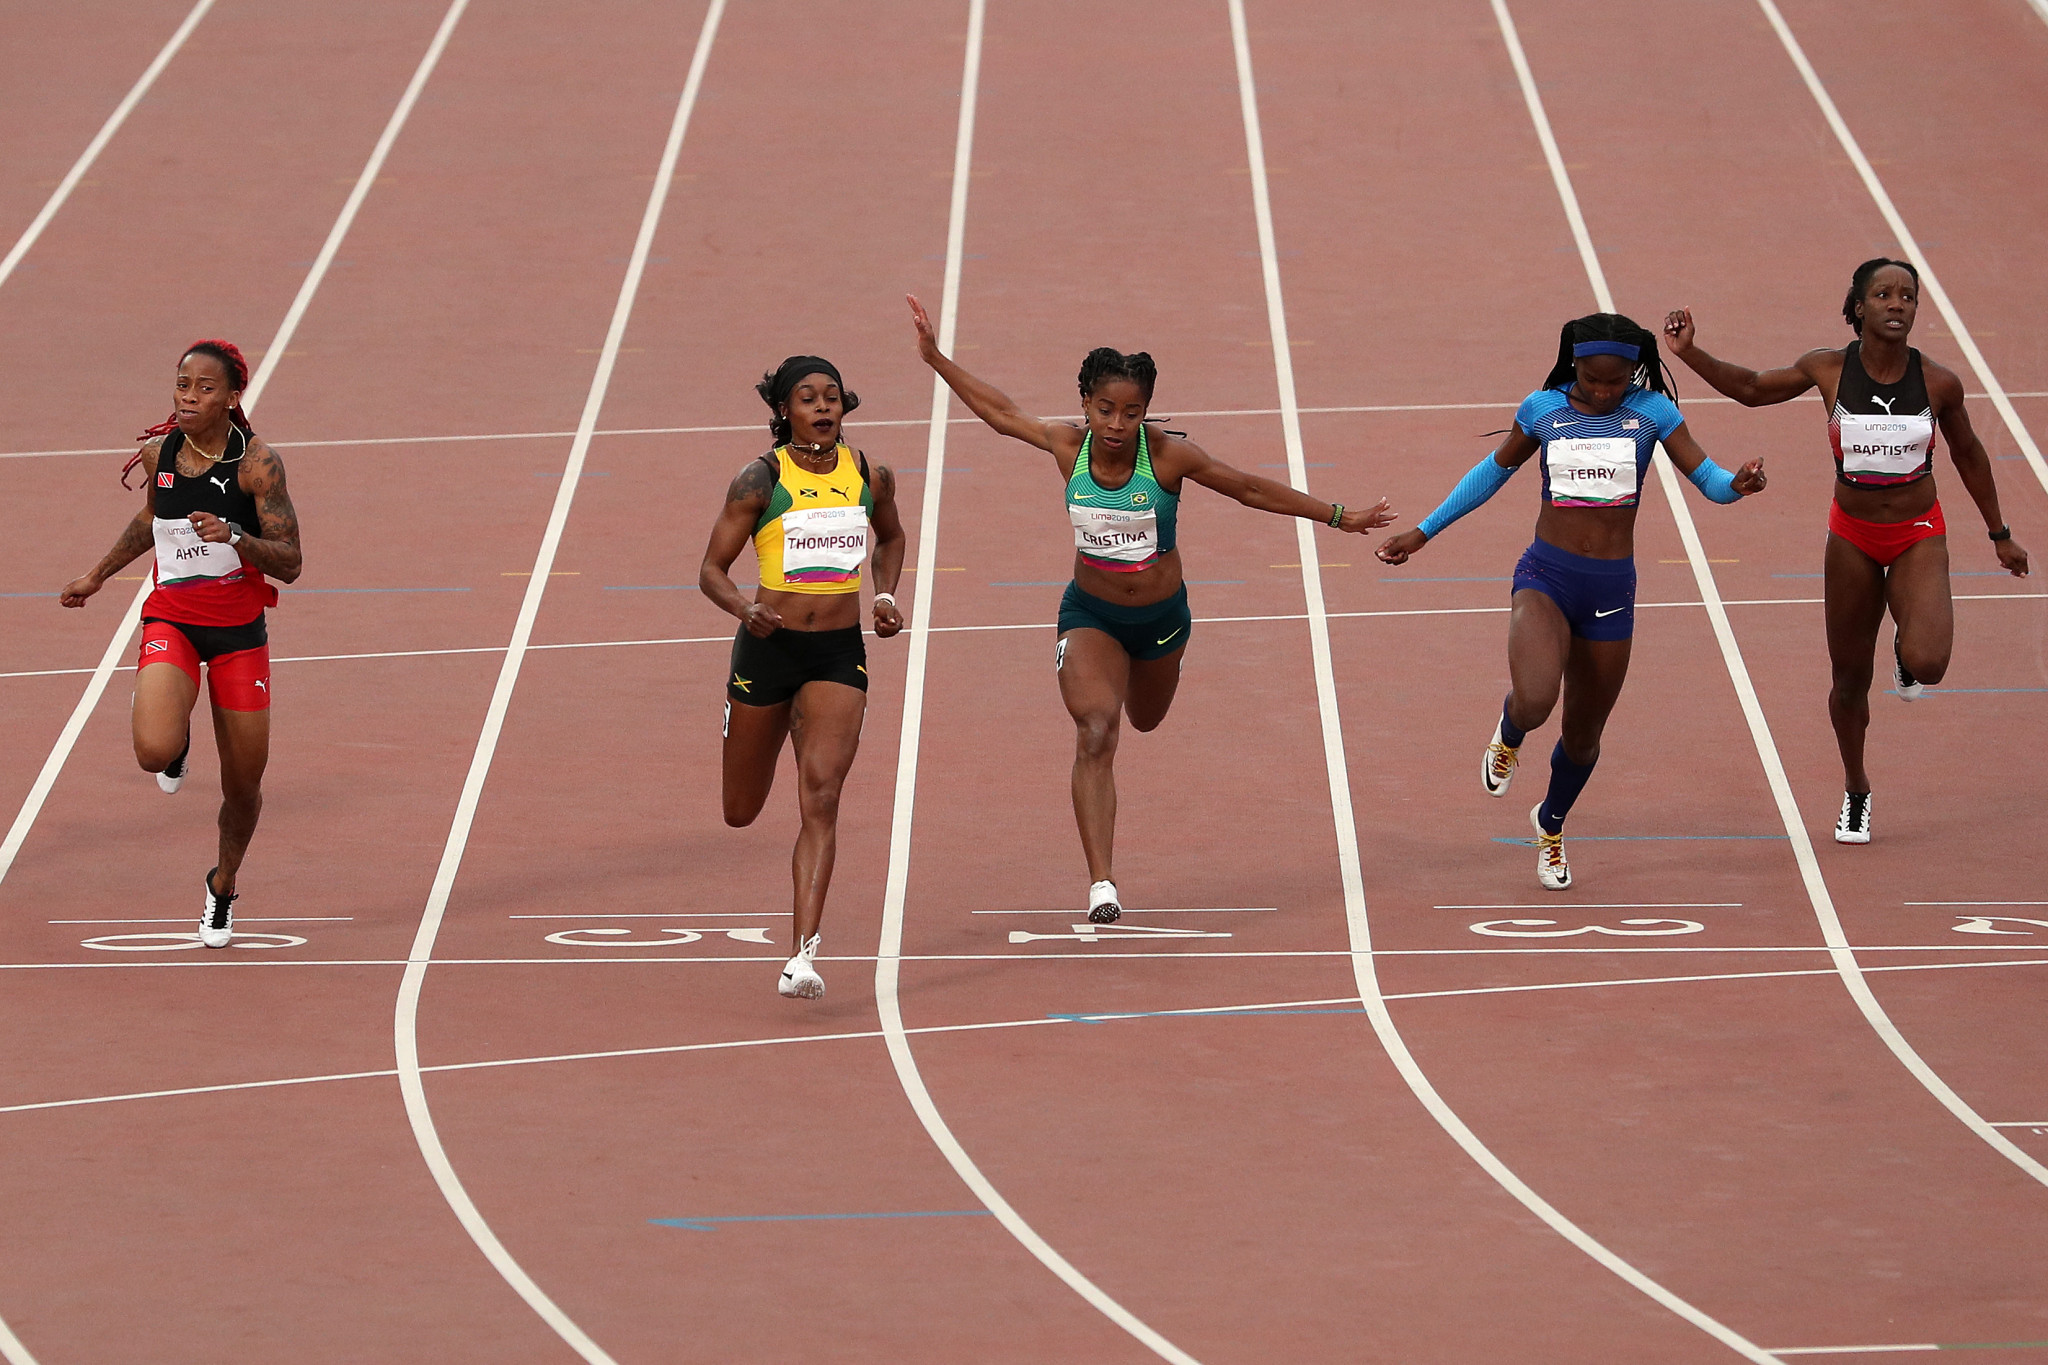 Olympic champion Thompson storms to women's 100m title at Lima 2019